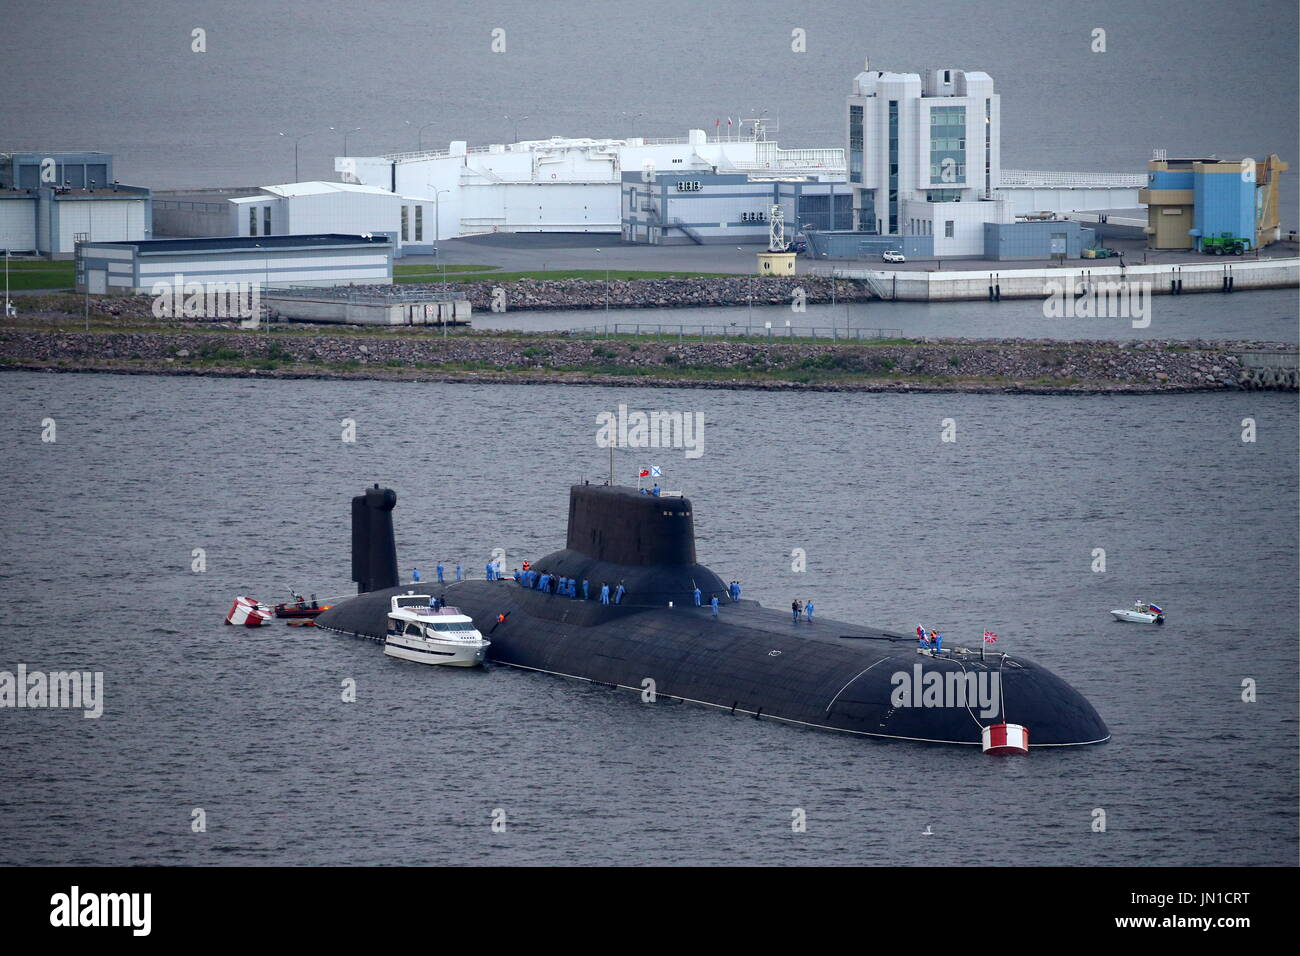 St Petersburg, Russia. 28th July, 2017. Russian Navy's TK-208 Dmitry Donskoy nuclear submarine arrives at the Leningrad Naval Base of the Russian Baltic Fleet in the town of Kronstad on Kotlin Island to participate in the Main Navy Parade scheduled for July 30, 2017 to mark Russian Navy Day. Credit: Peter Kovalev/TASS/Alamy Live News - Stock Image